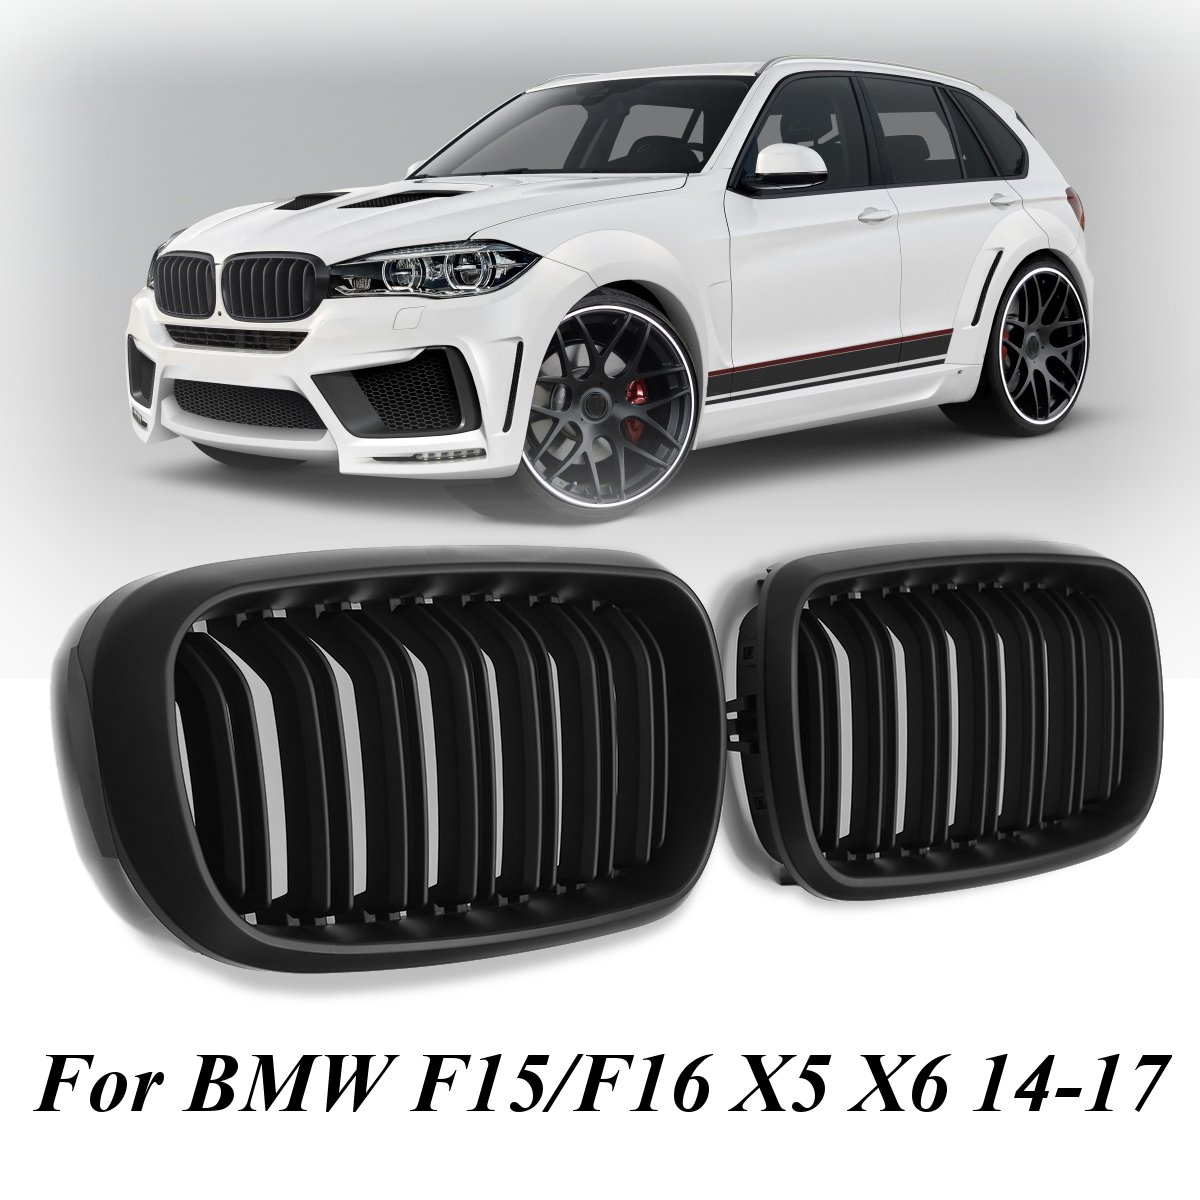 Pair New Matte Black Double Slat Line Front Kidney Grill Grille For BMW F15/F16 X5 X6 2014 2015 2016 2017 x5 f15 x6 f16 abs gloss black grill for bmw x5 x6 f15 f16 front bumper grille kidney mesh